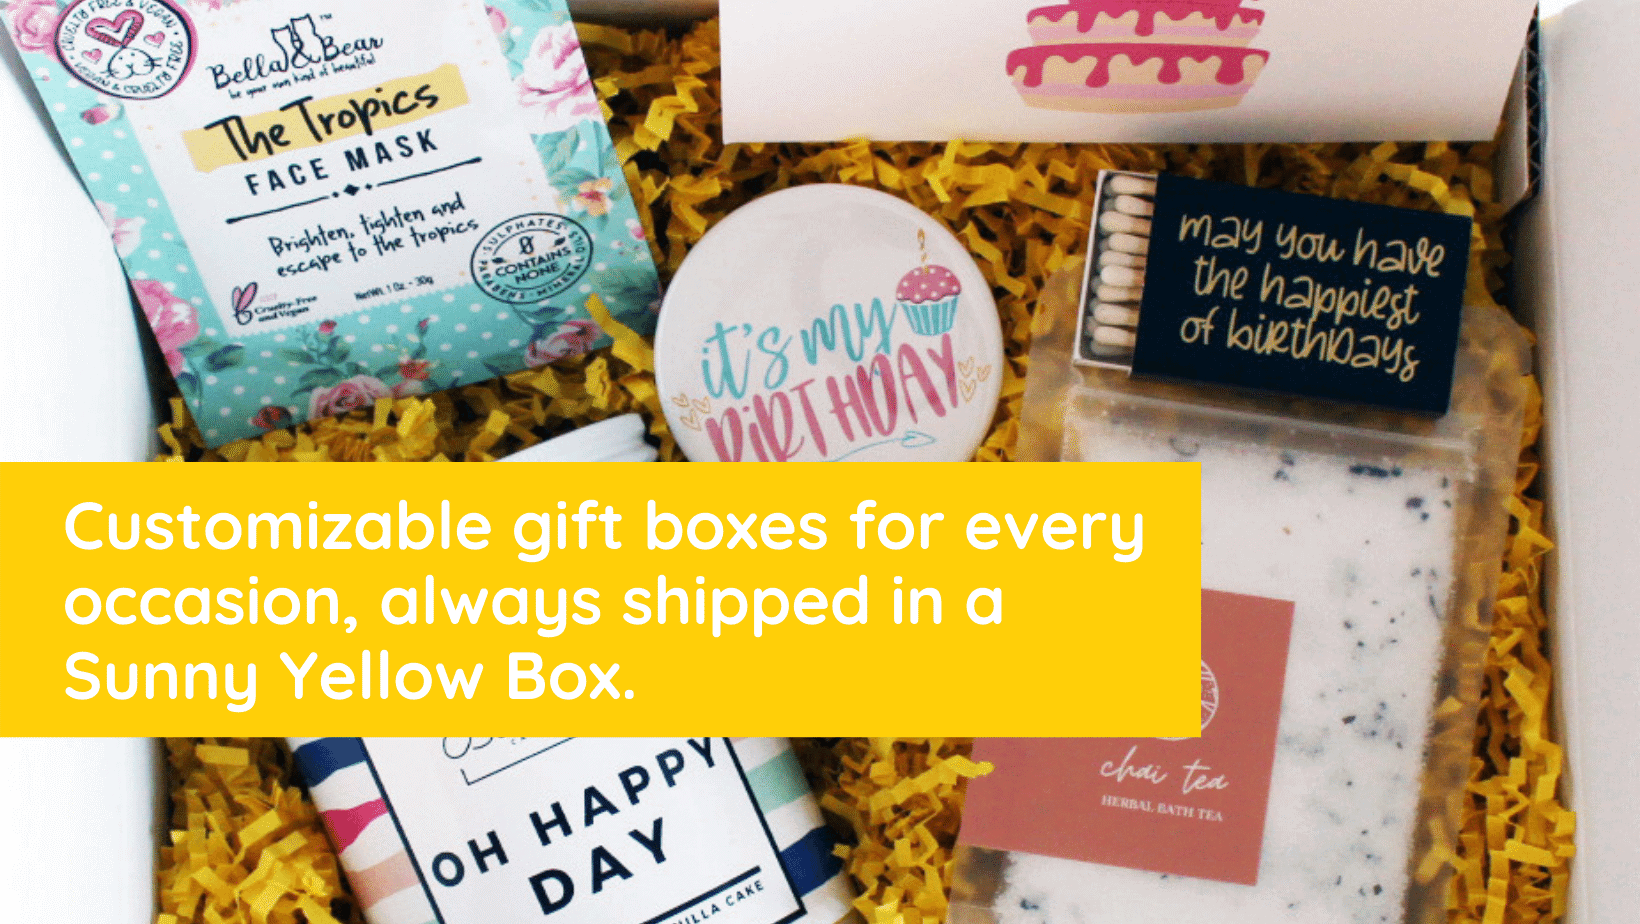 gift box with overlay describing sunny yellow box and items behind